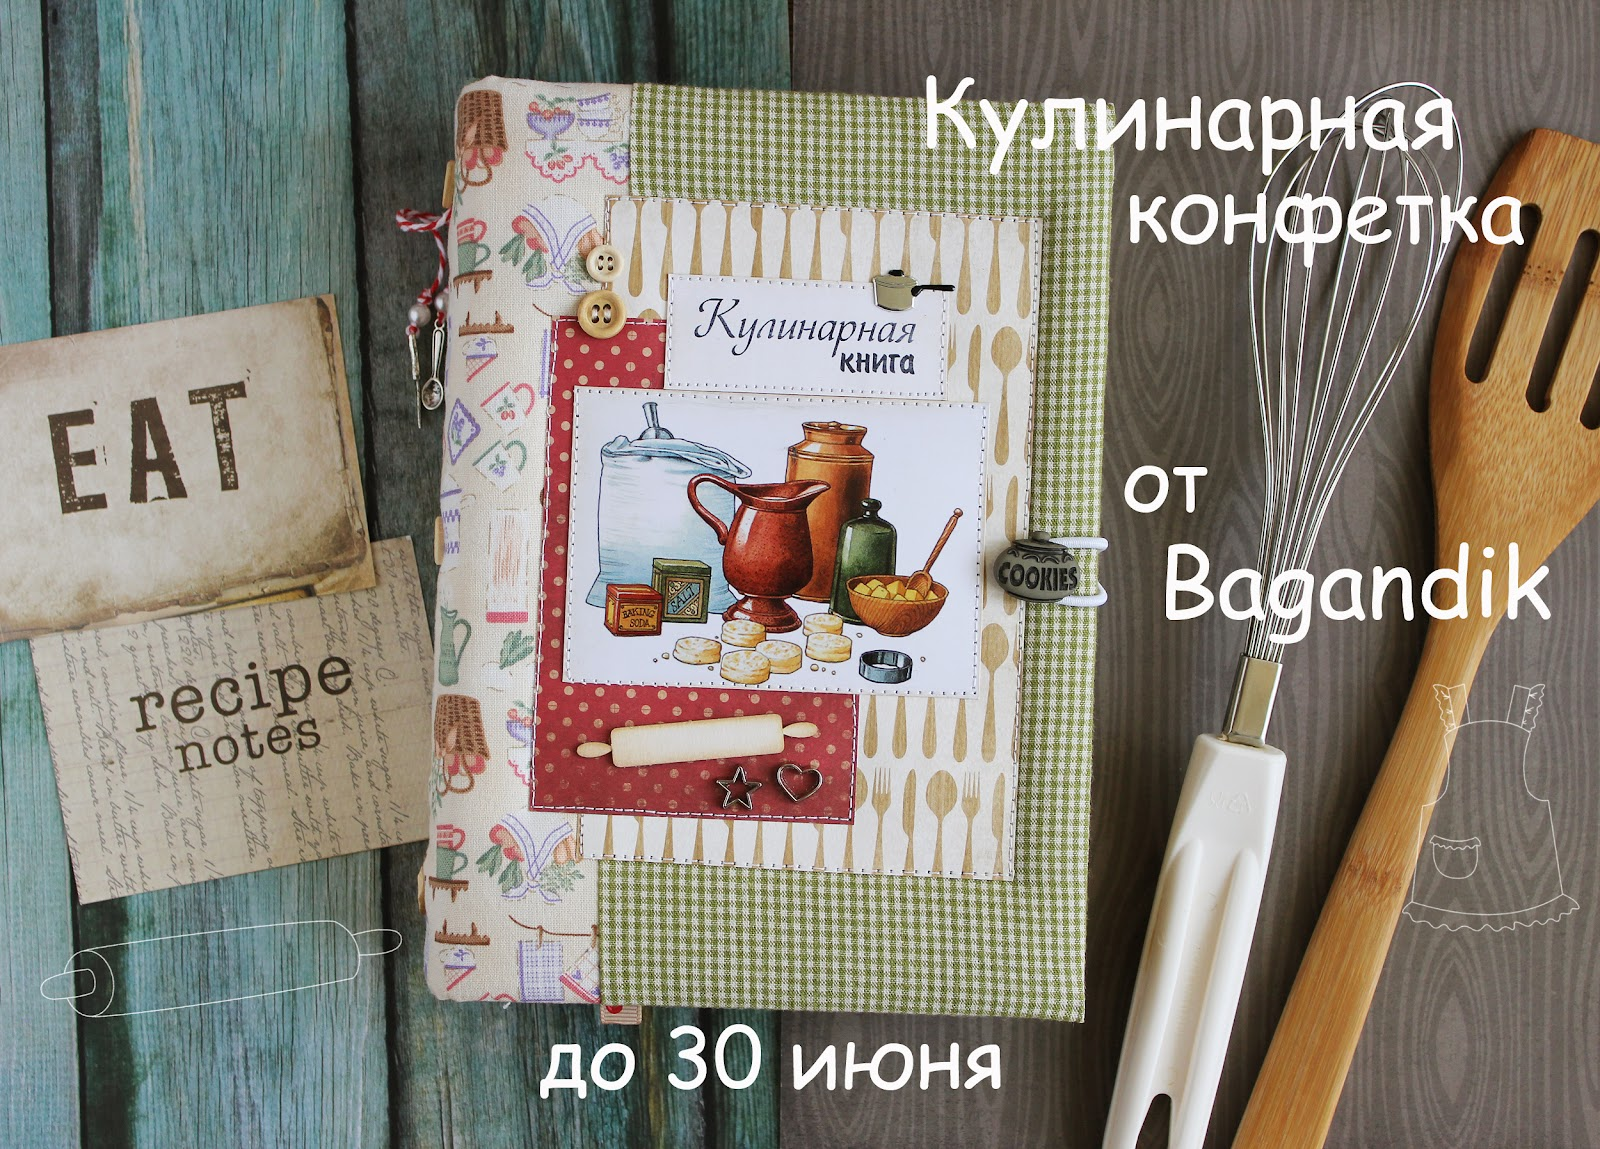 http://bagandik.blogspot.ru/2014/06/blog-post_7456.html